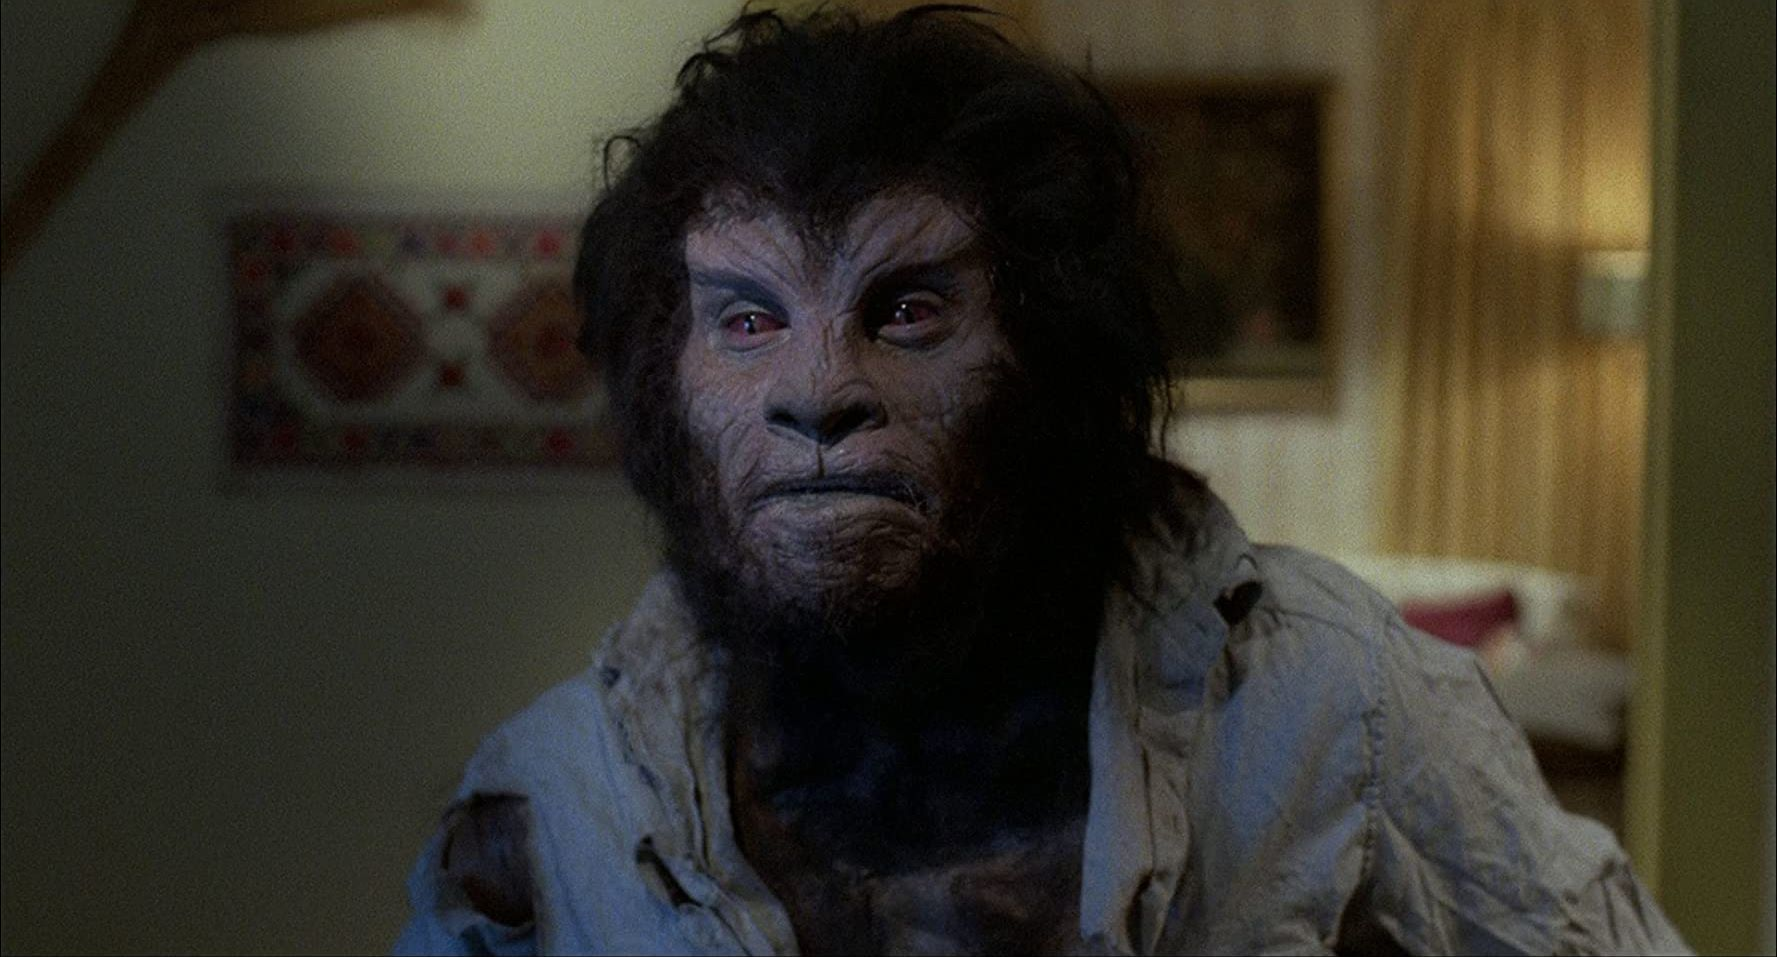 Matt Mitler as the werewolf in the Little Red RunningHood episode of Deadtime Stories (1986)